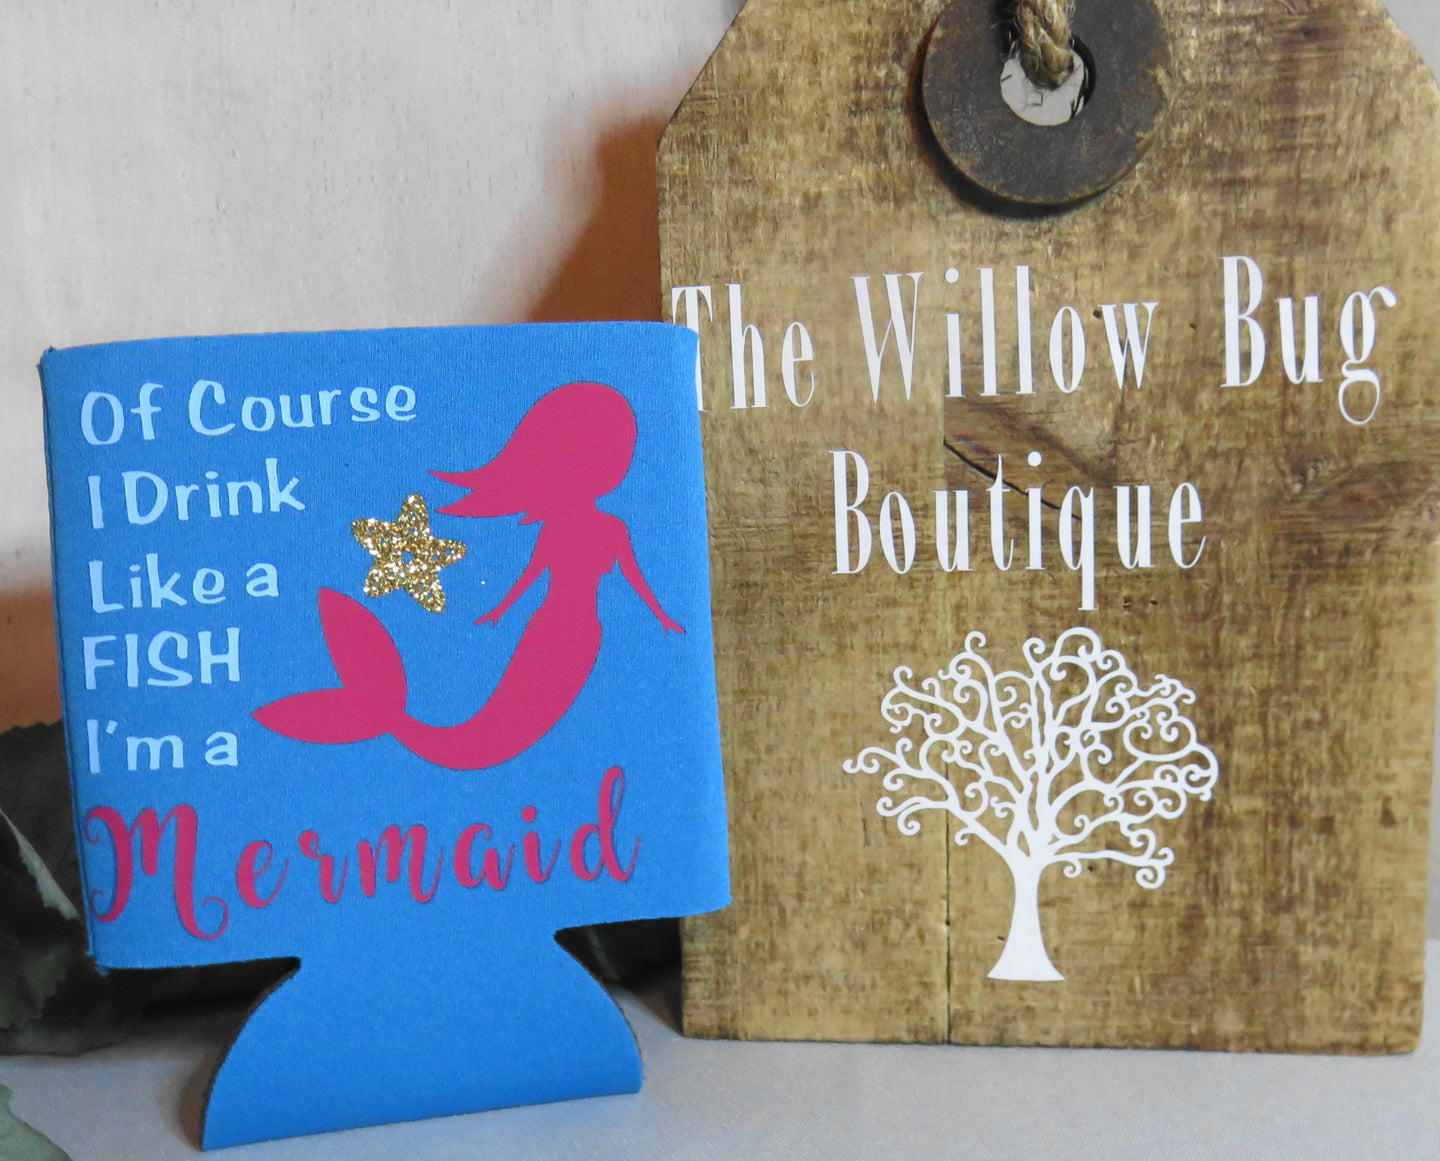 Now keep your beer and sodas every time chilled with Coozie. Shop online set of Koozie from the Willow Bug Boutique Store